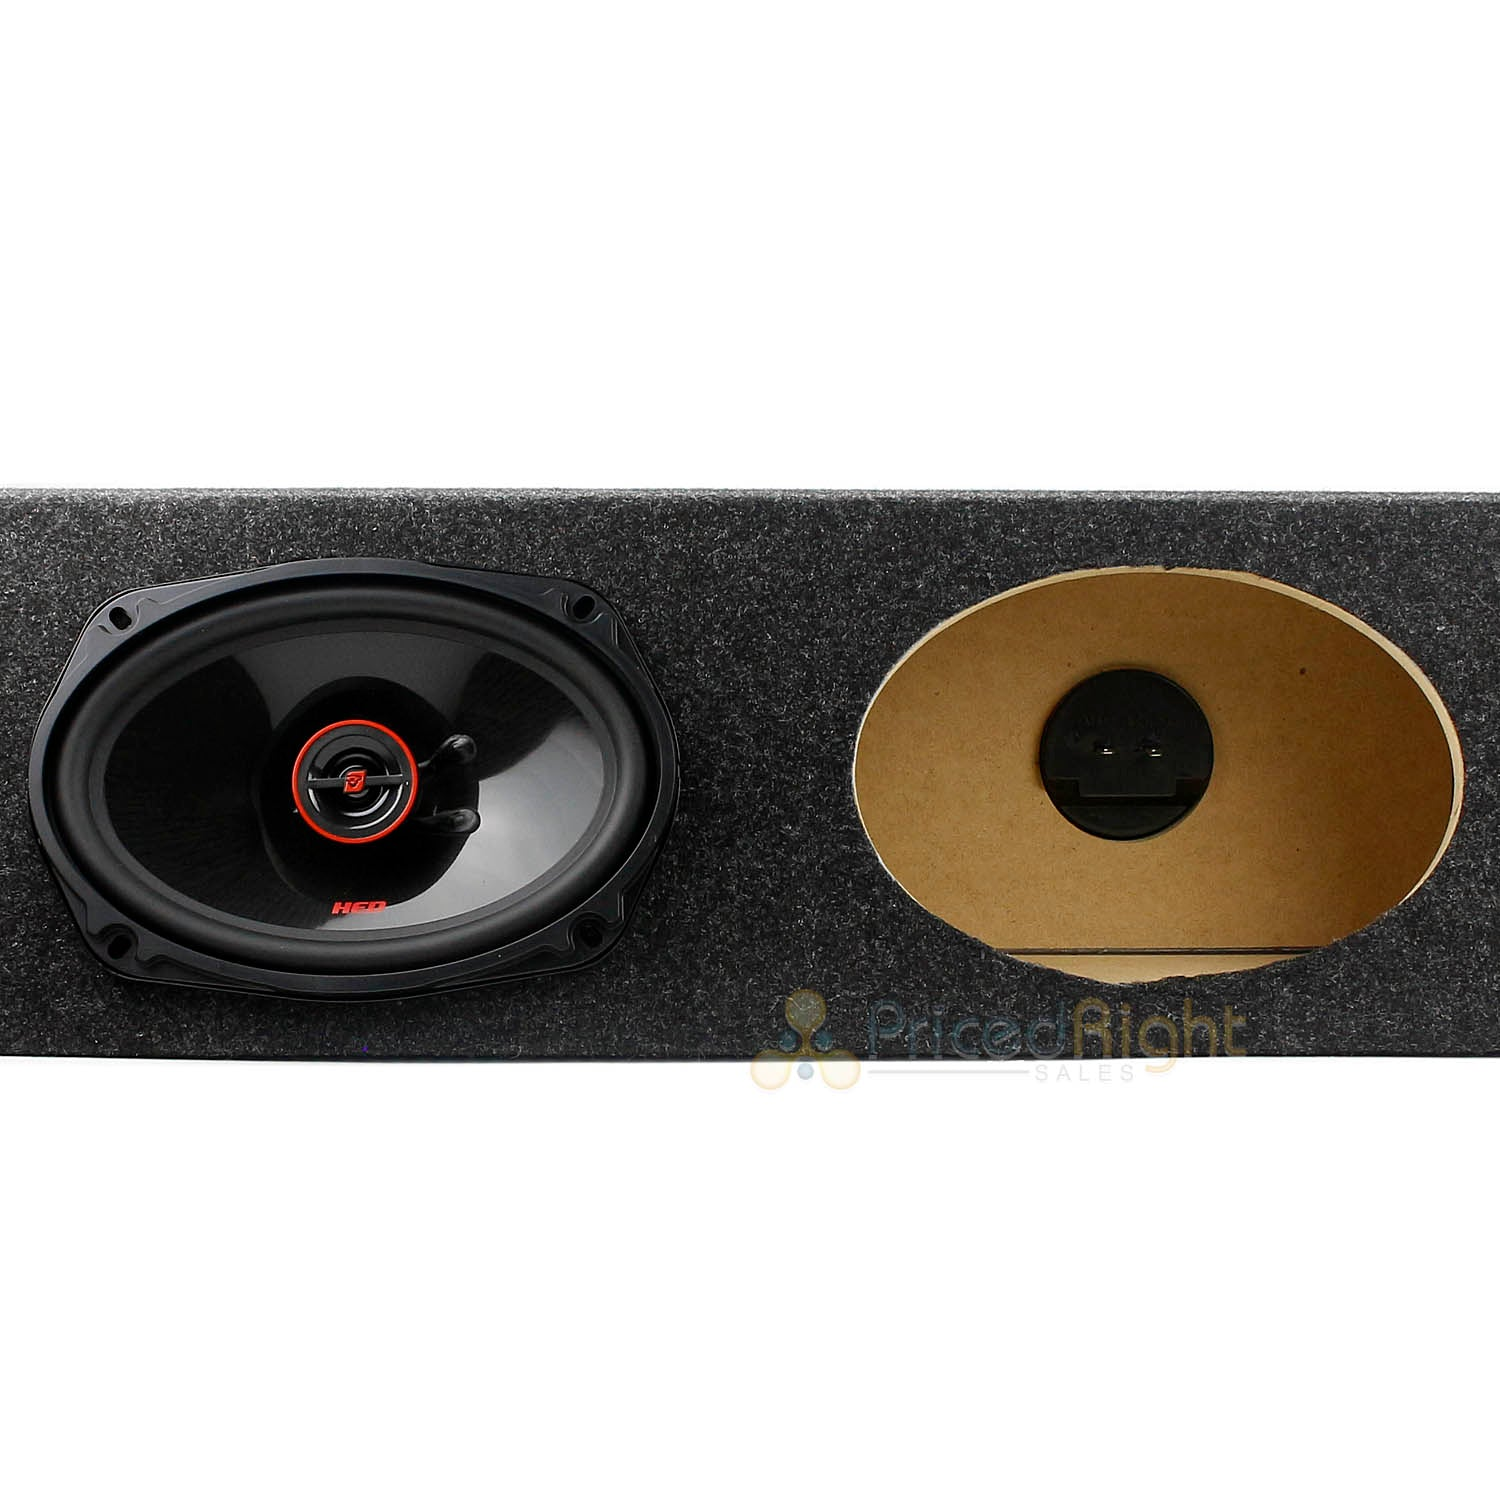 "Cerwin Vega 6x9"" 2-Way Coaxial Car Speakers with 4 Four Hole Box Enclosure H7692"